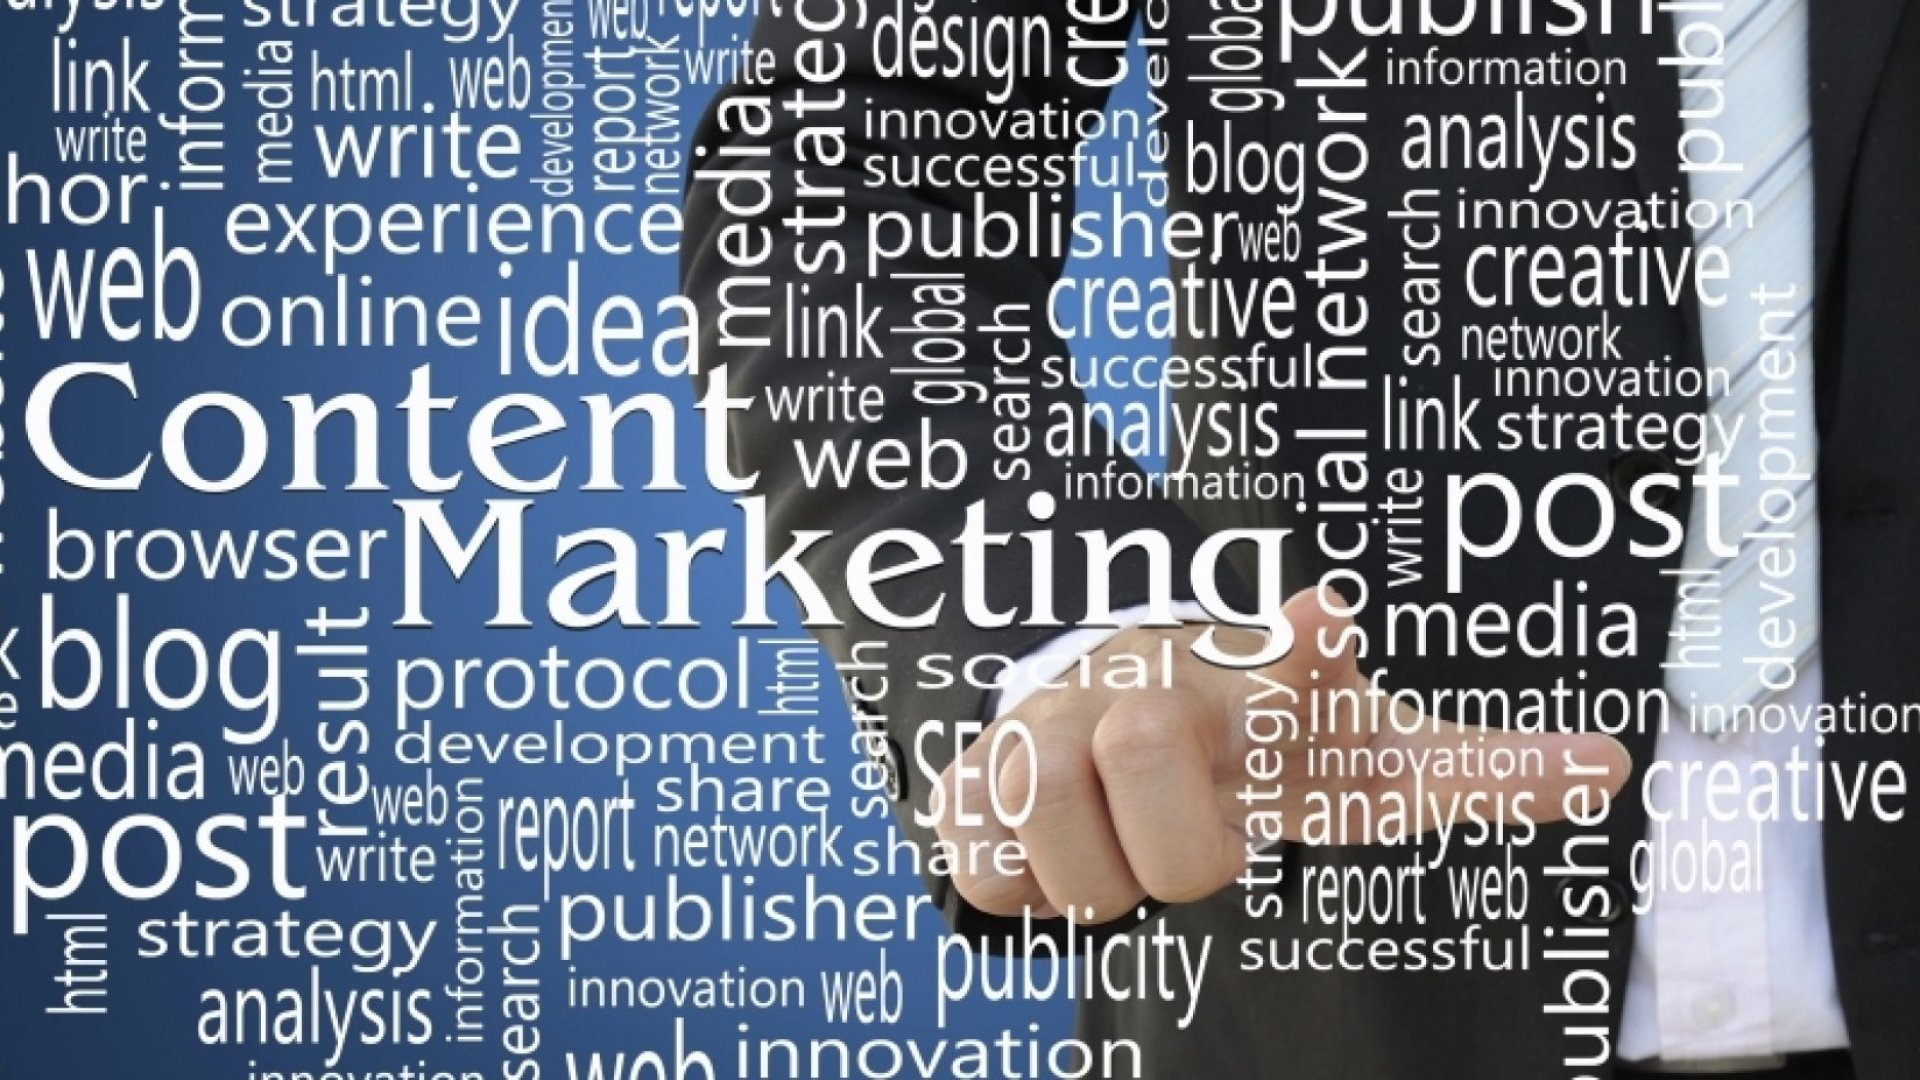 4 Ways Brands Can Tell Compelling Stories With Content Marketing